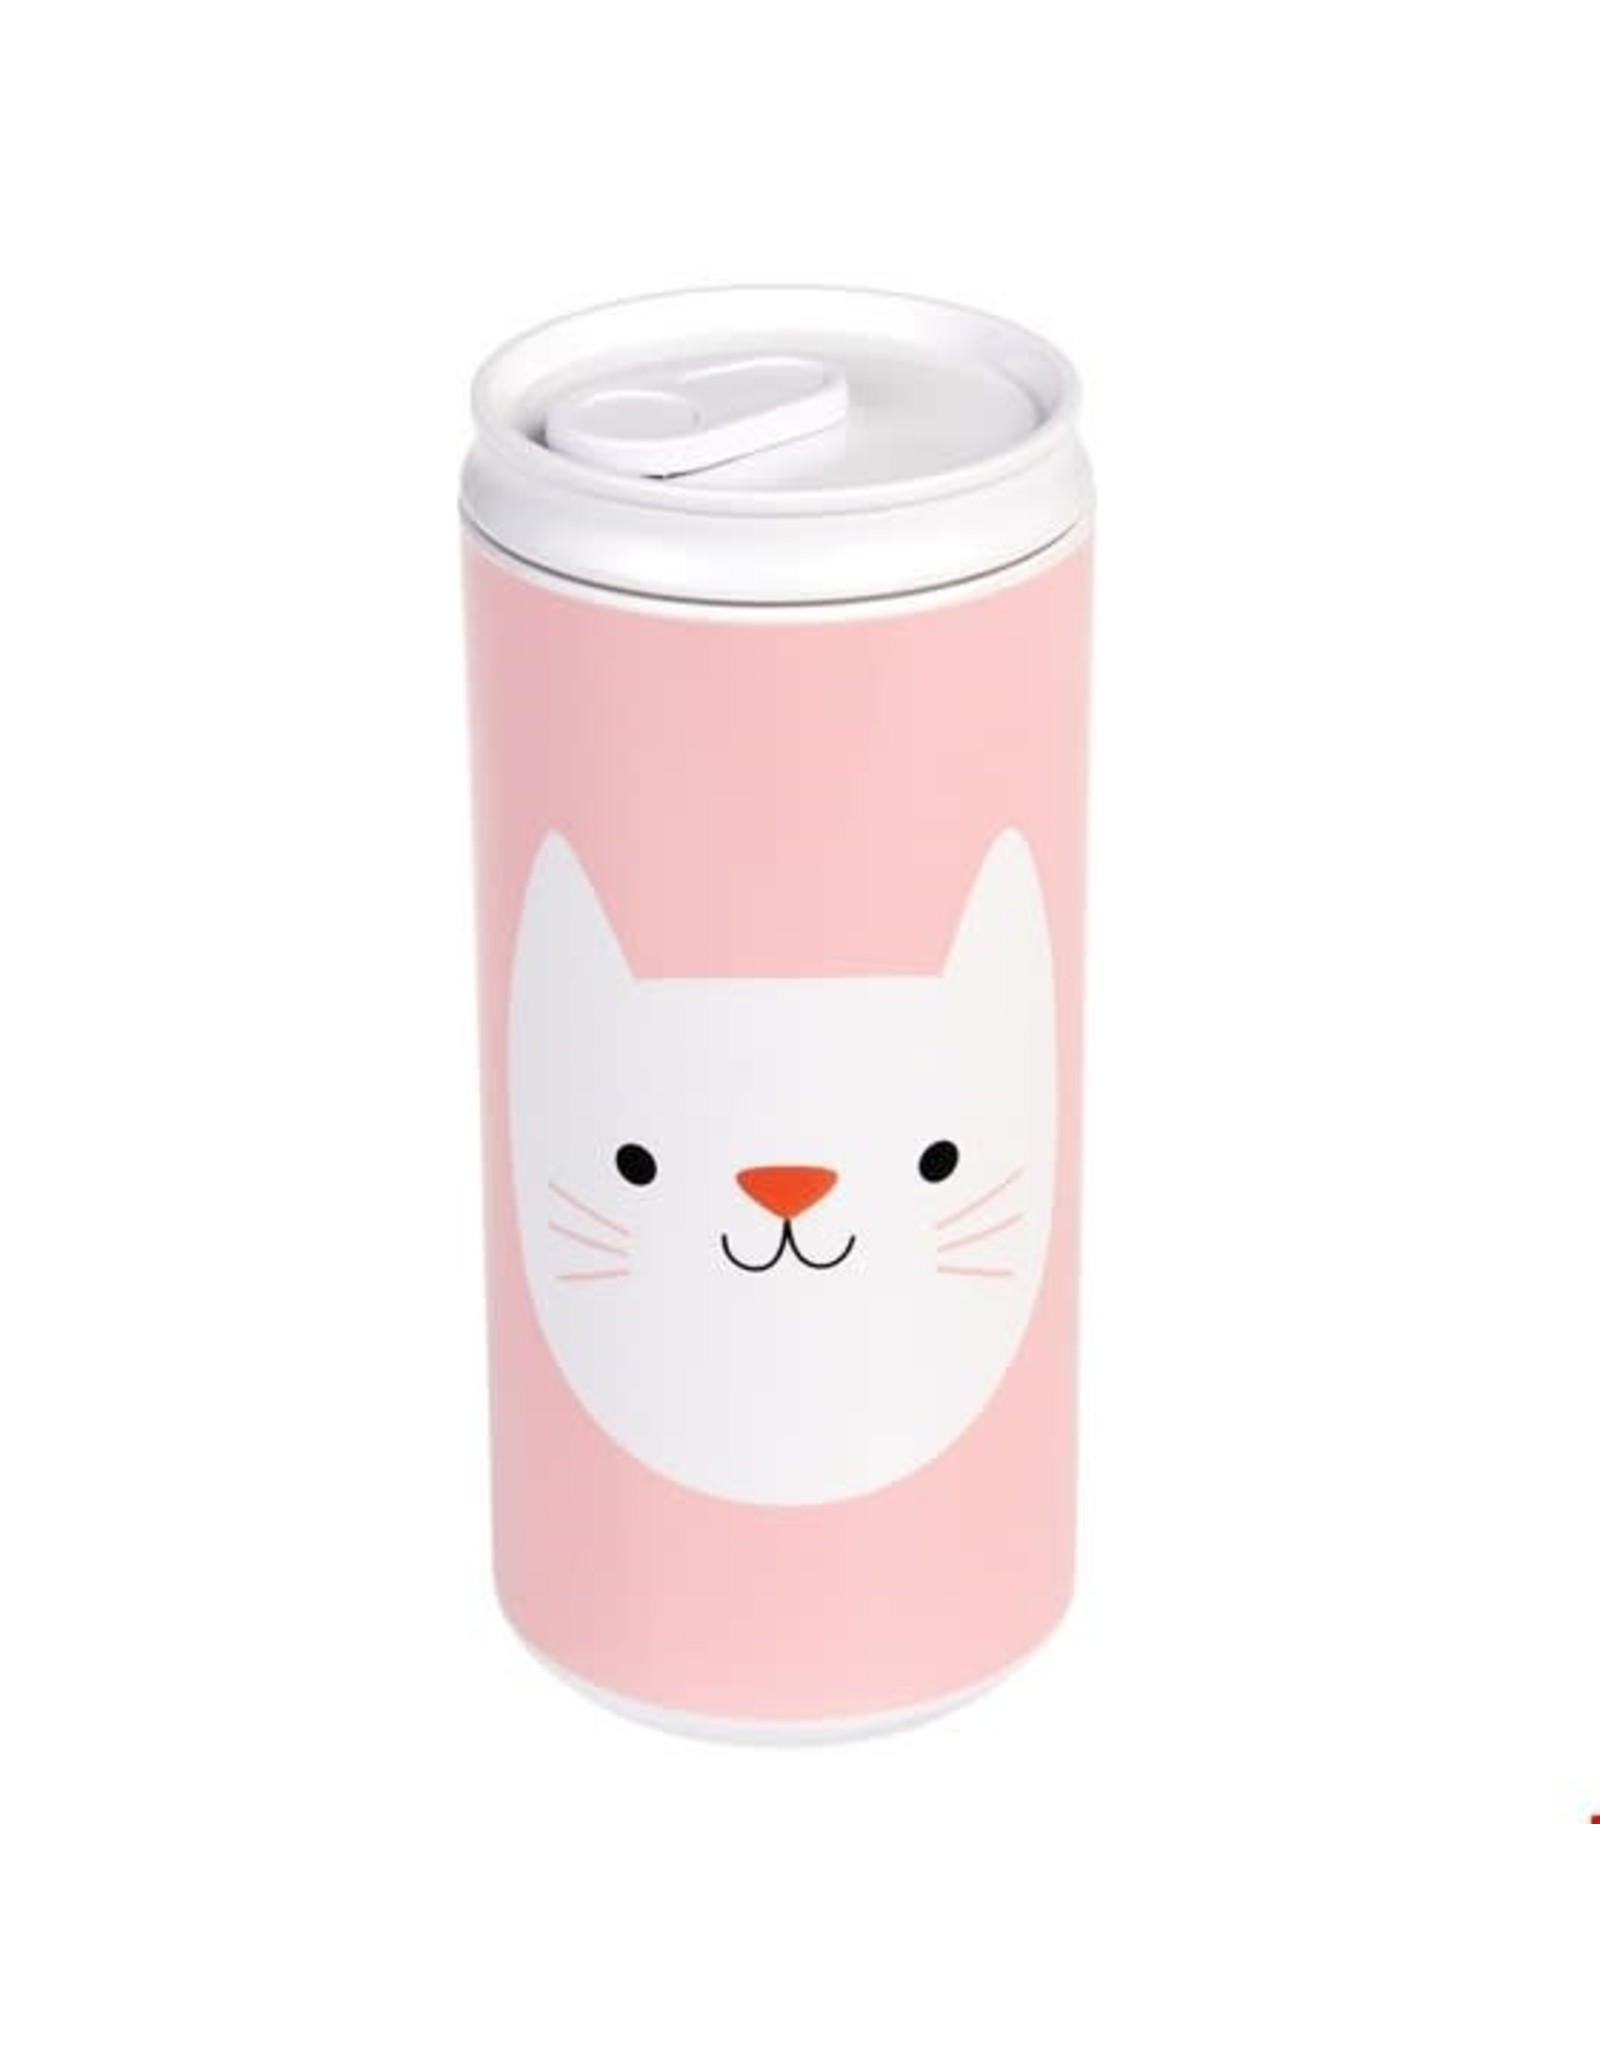 REX London Eco Can, Cookie the Cat